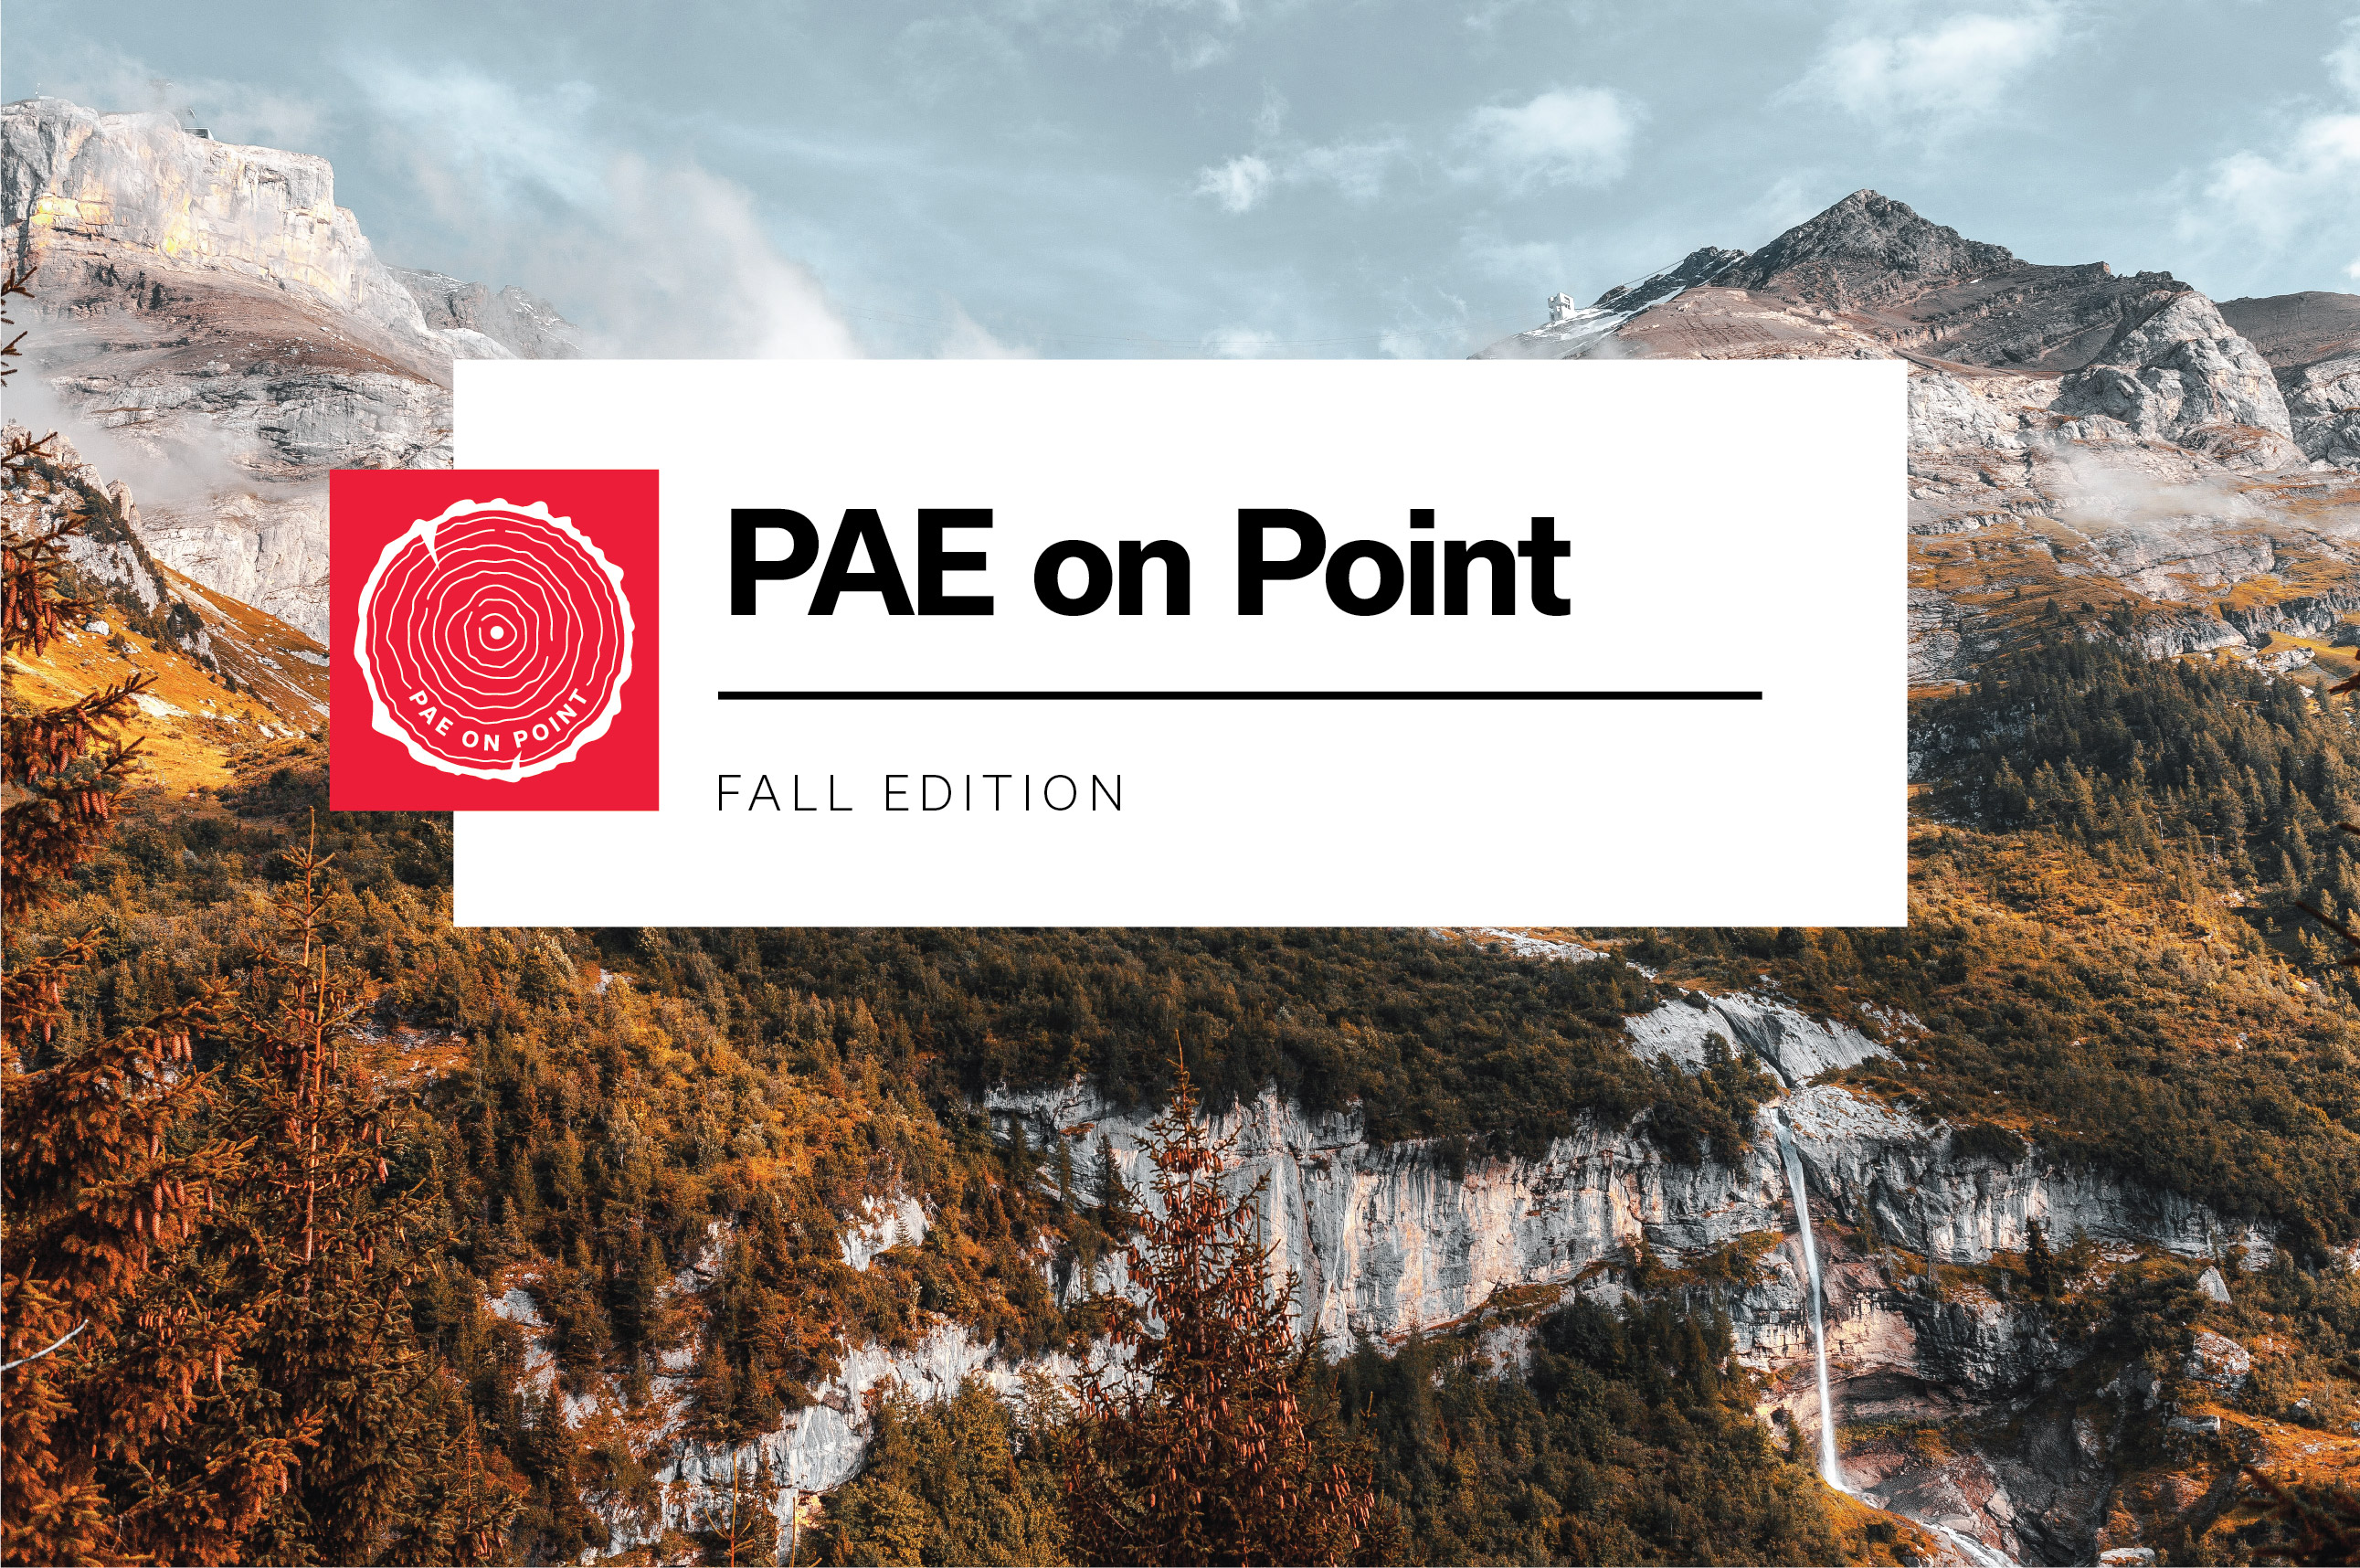 PAE on Point | Fall Edition | Thought Leadership | Justin Stenkamp | Karina Hershberg | David Mead